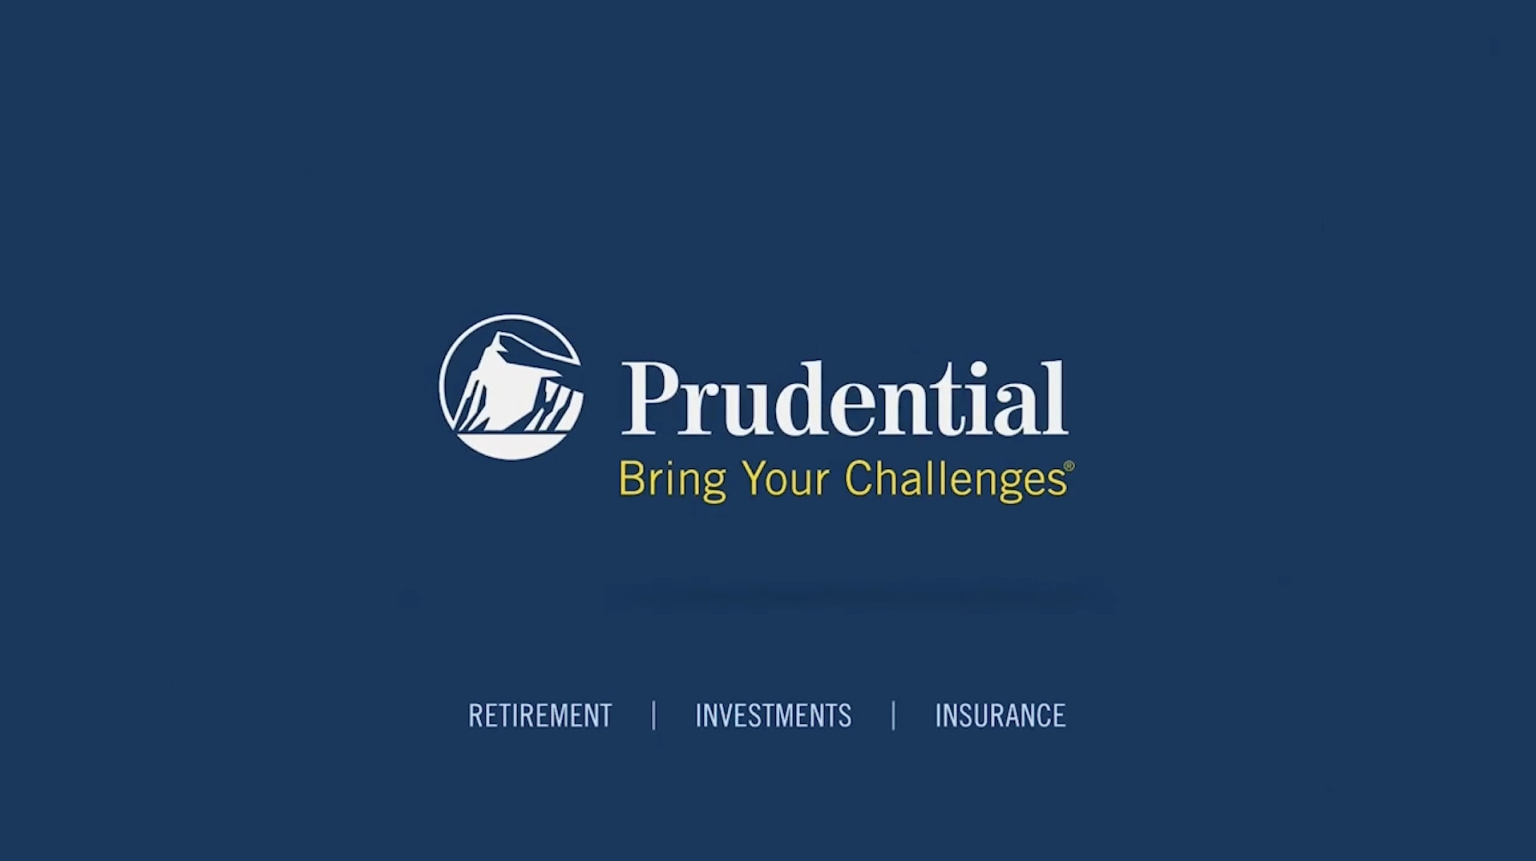 Prudential - You Can't Plan for Everything